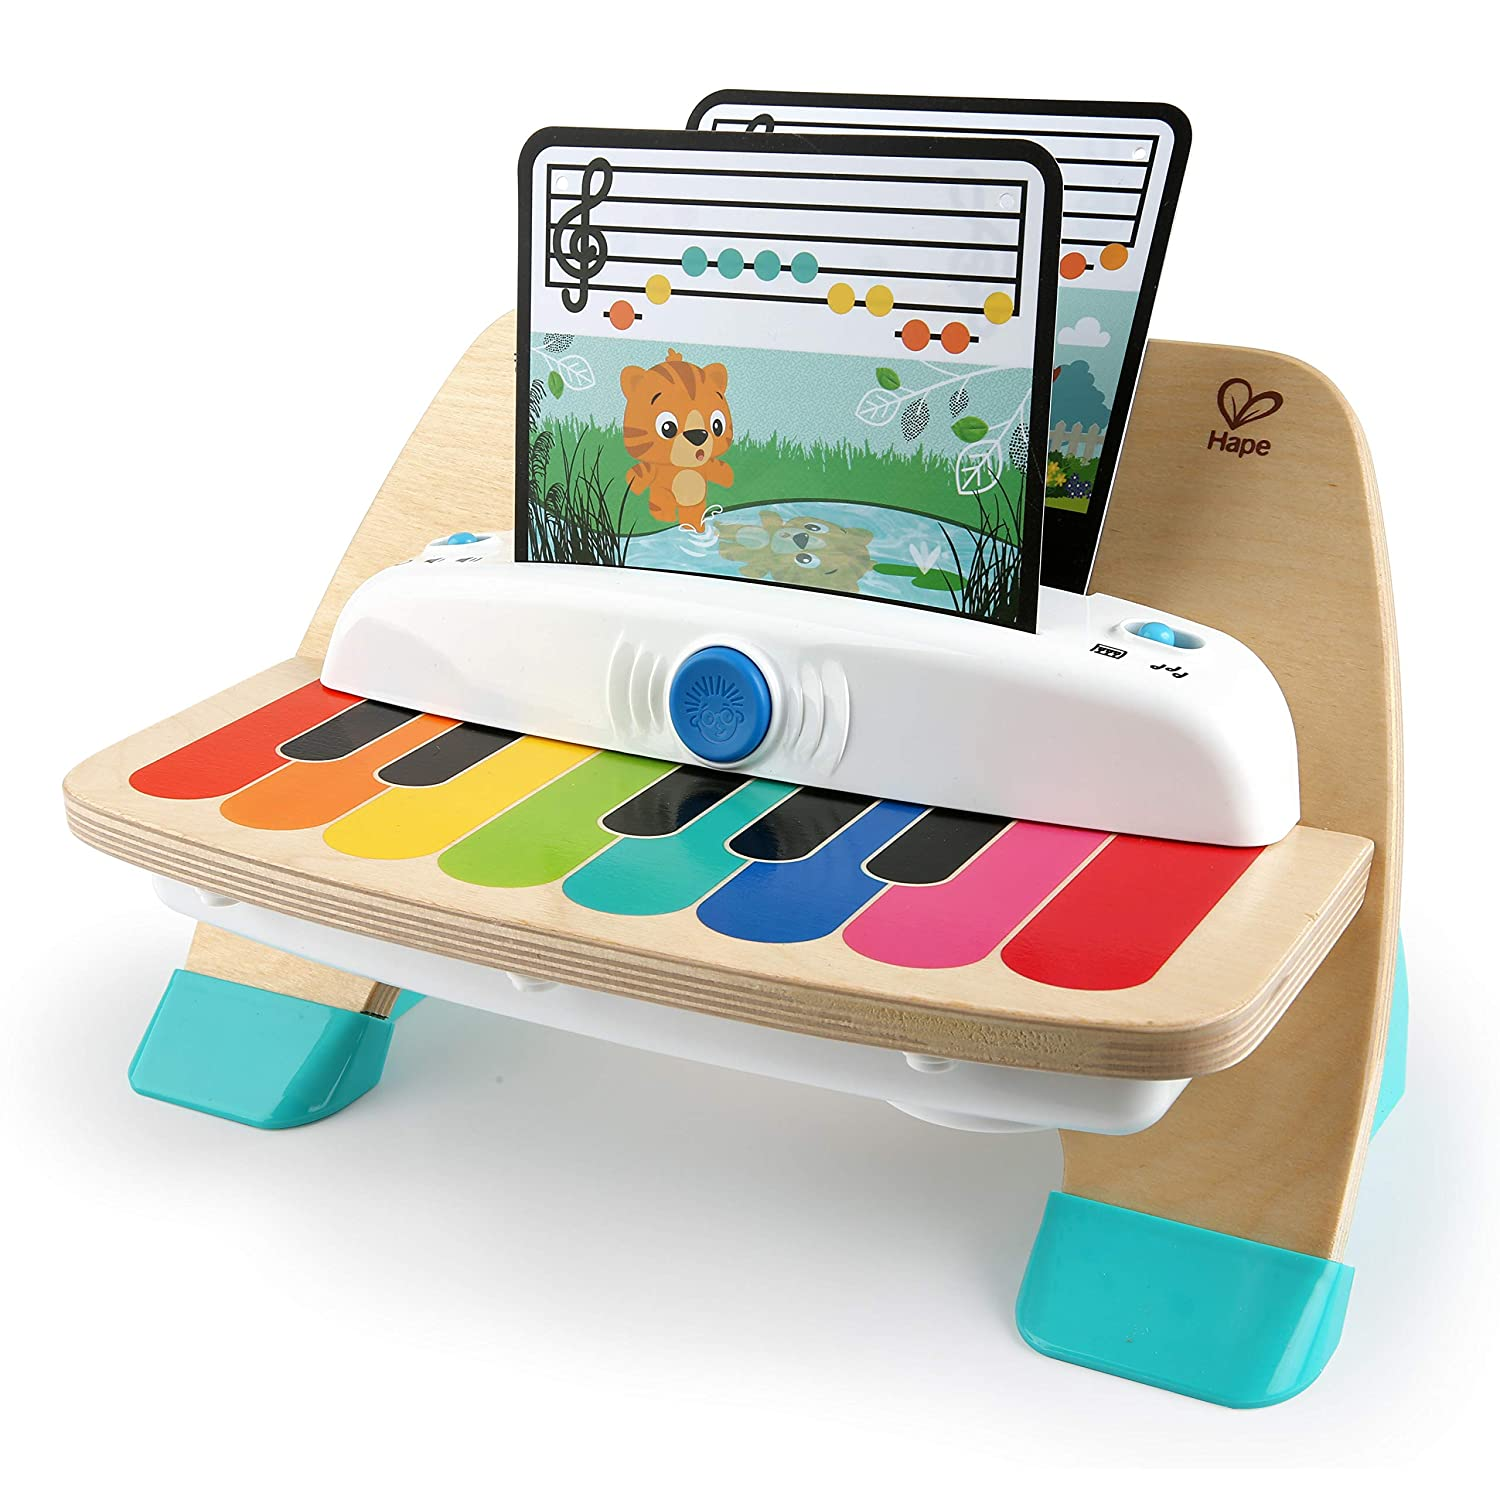 11649-6 Ages 12 months and up Kids II - Baby Einstein Magic Touch Piano Wooden Musical Toy Toddler Toy Carson CA